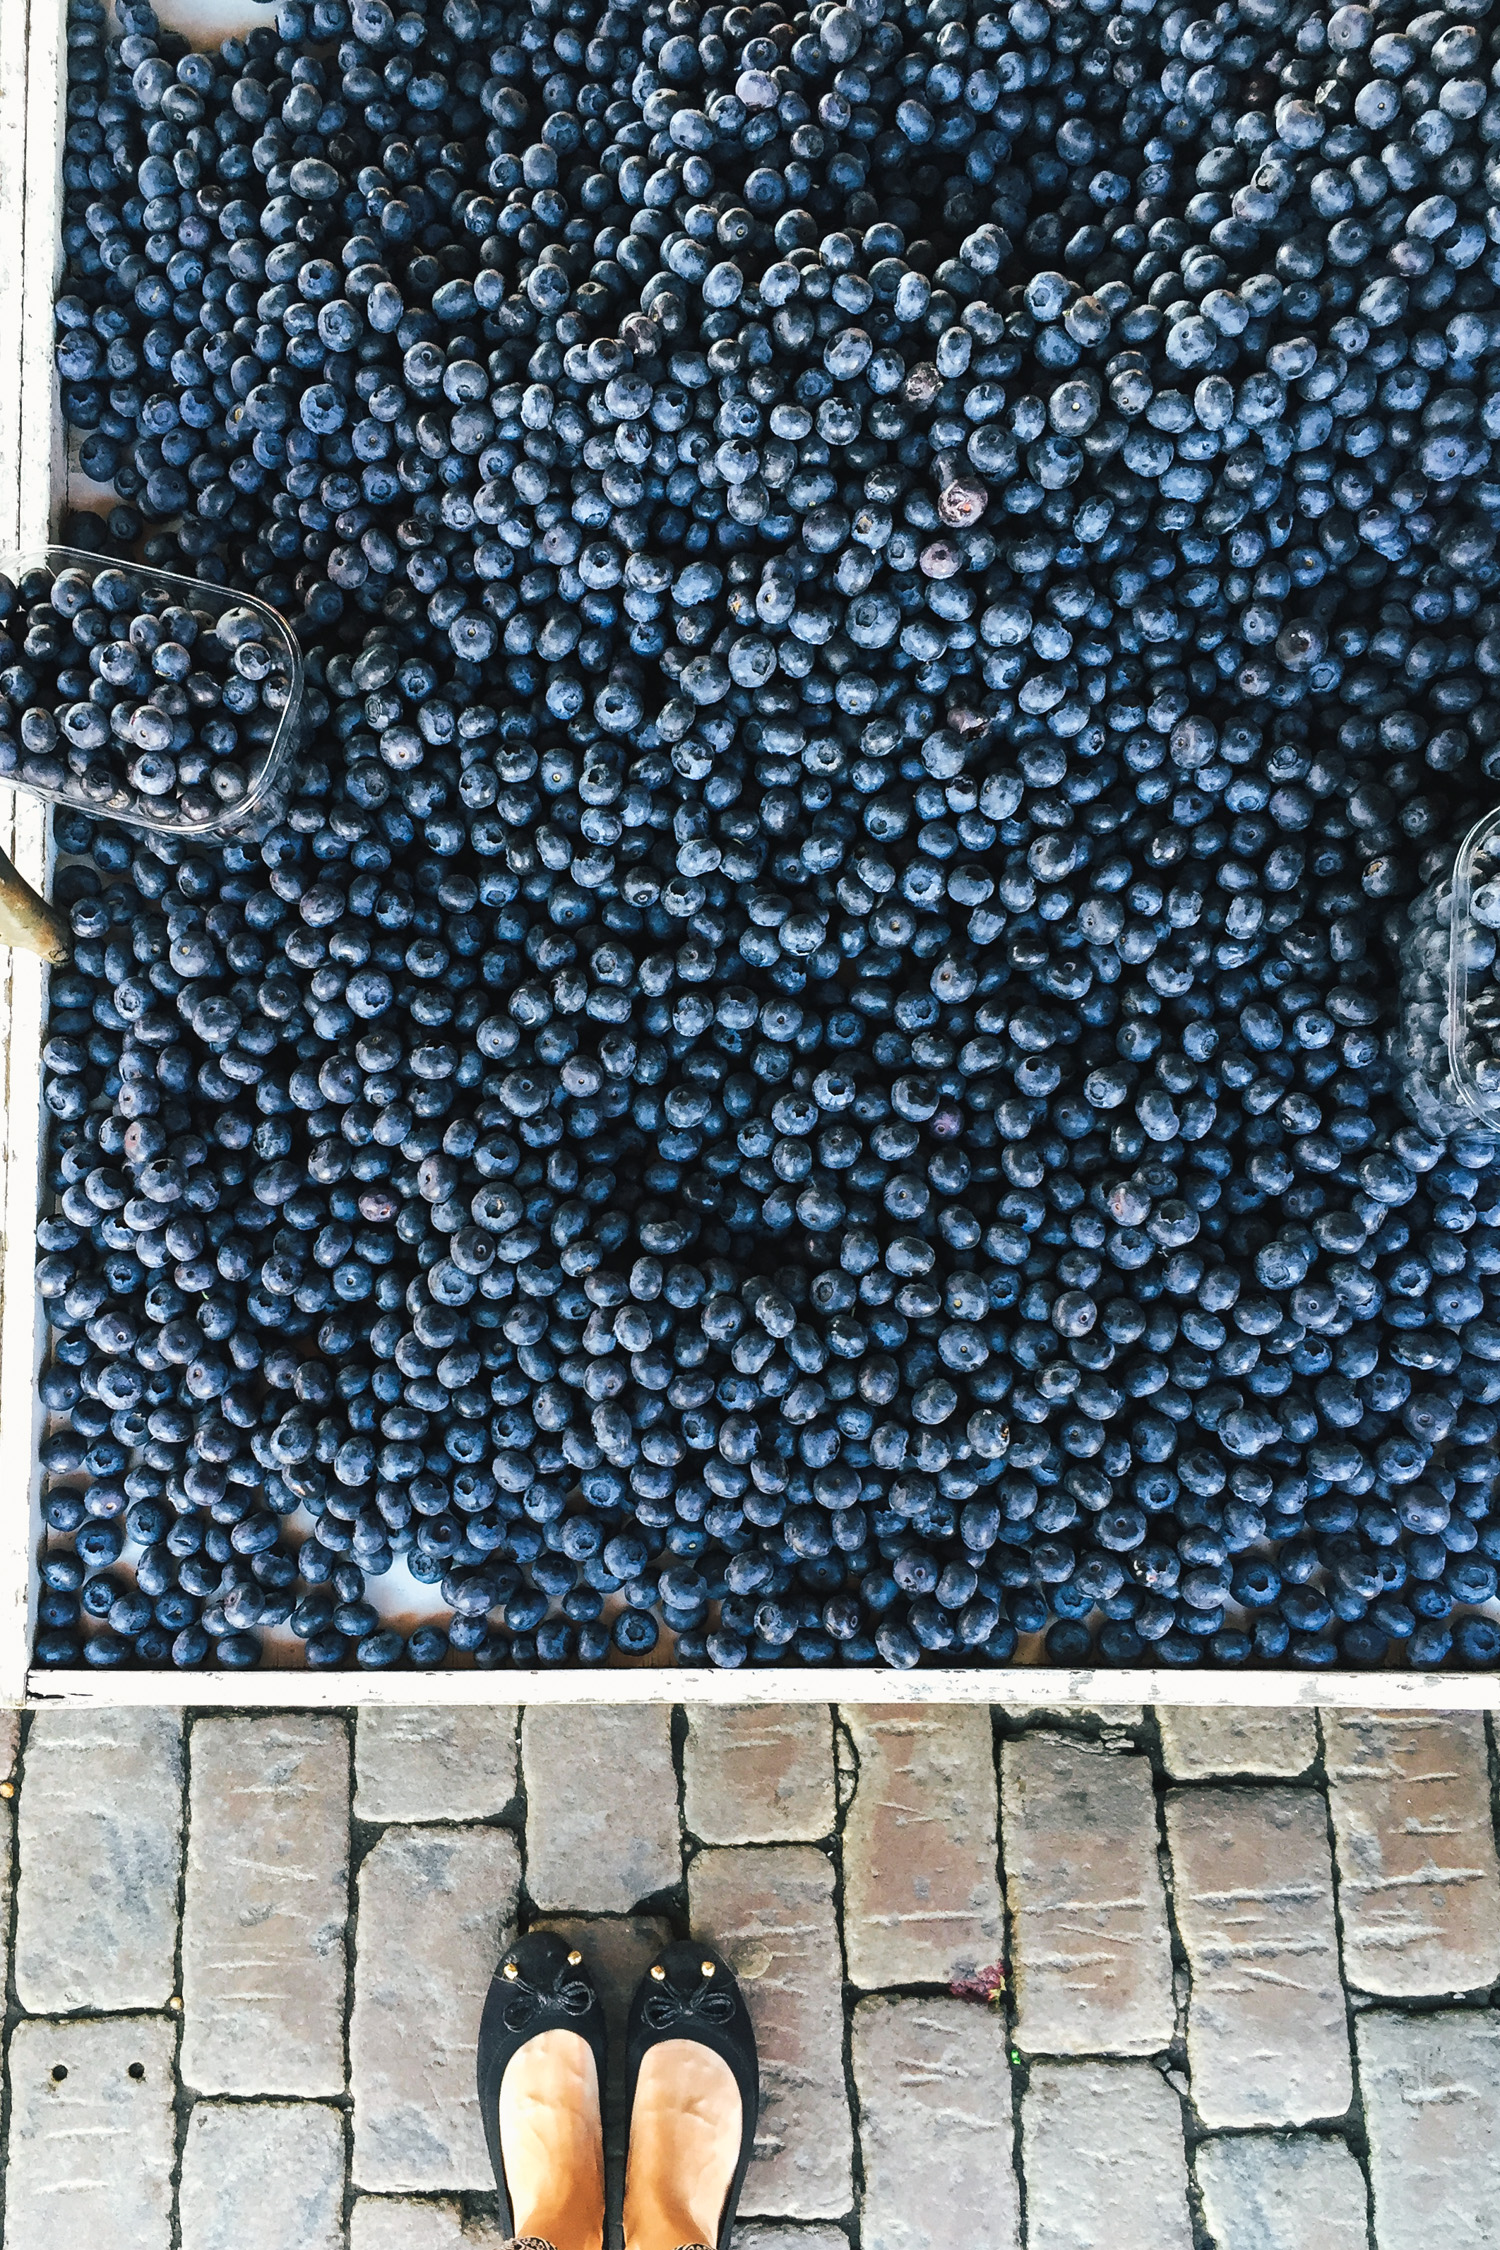 Cold Blueberry Soup - A Recipe from Finland